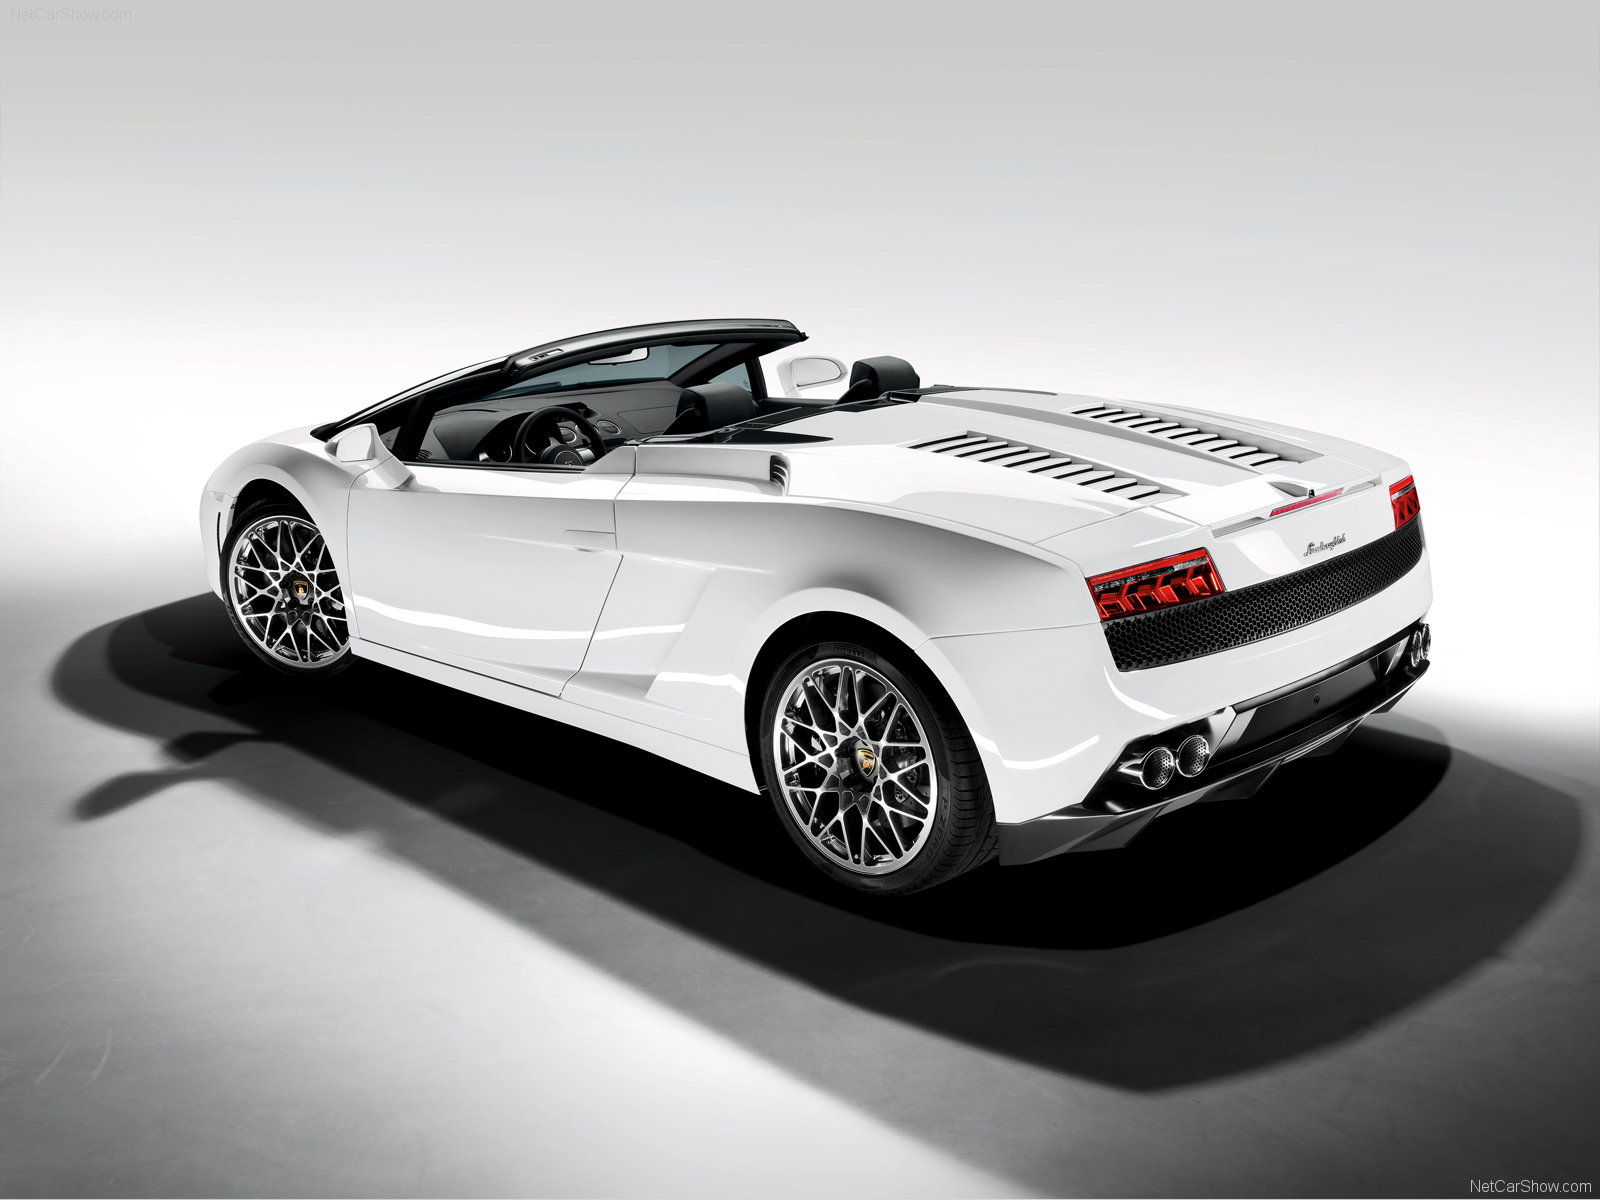 You can vote for this Lamborghini Gallardo LP560-4 Spyder photo